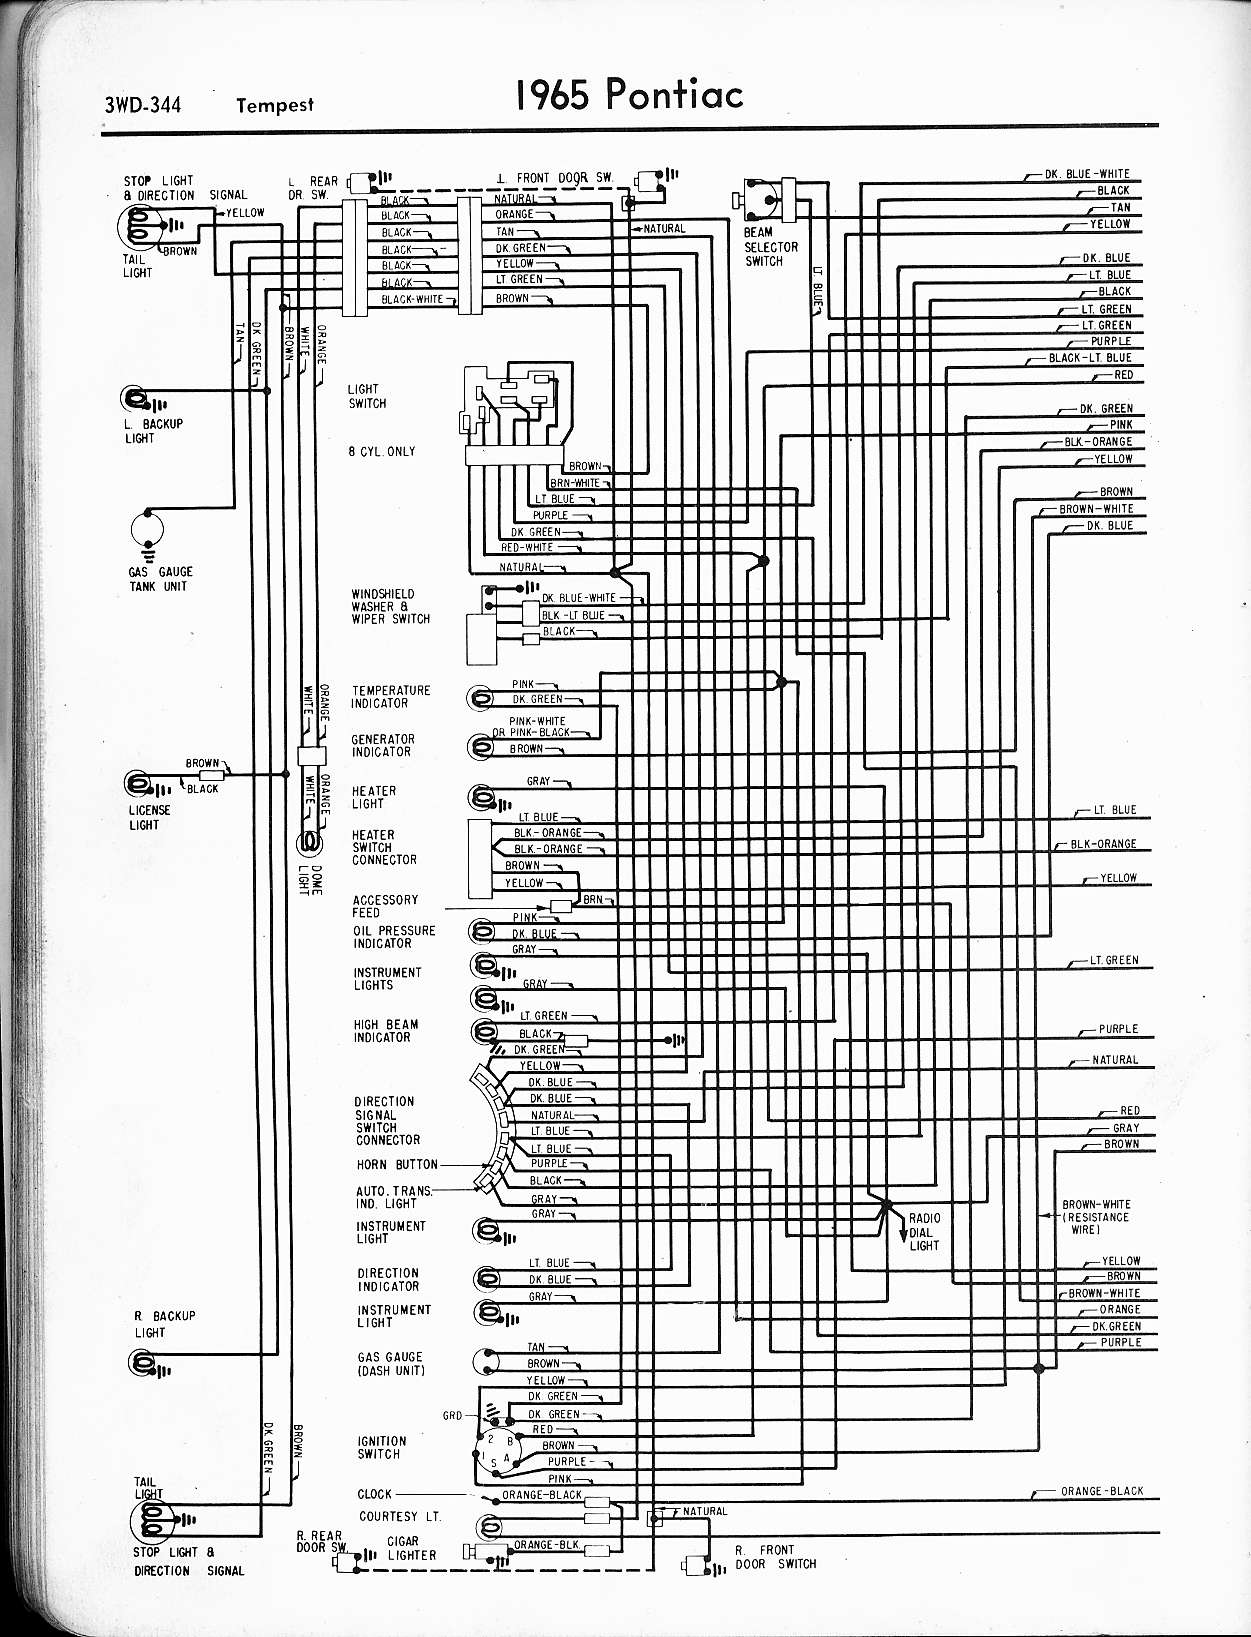 1966 Pontiac Wiring Diagram - Free Wiring Diagram For You •